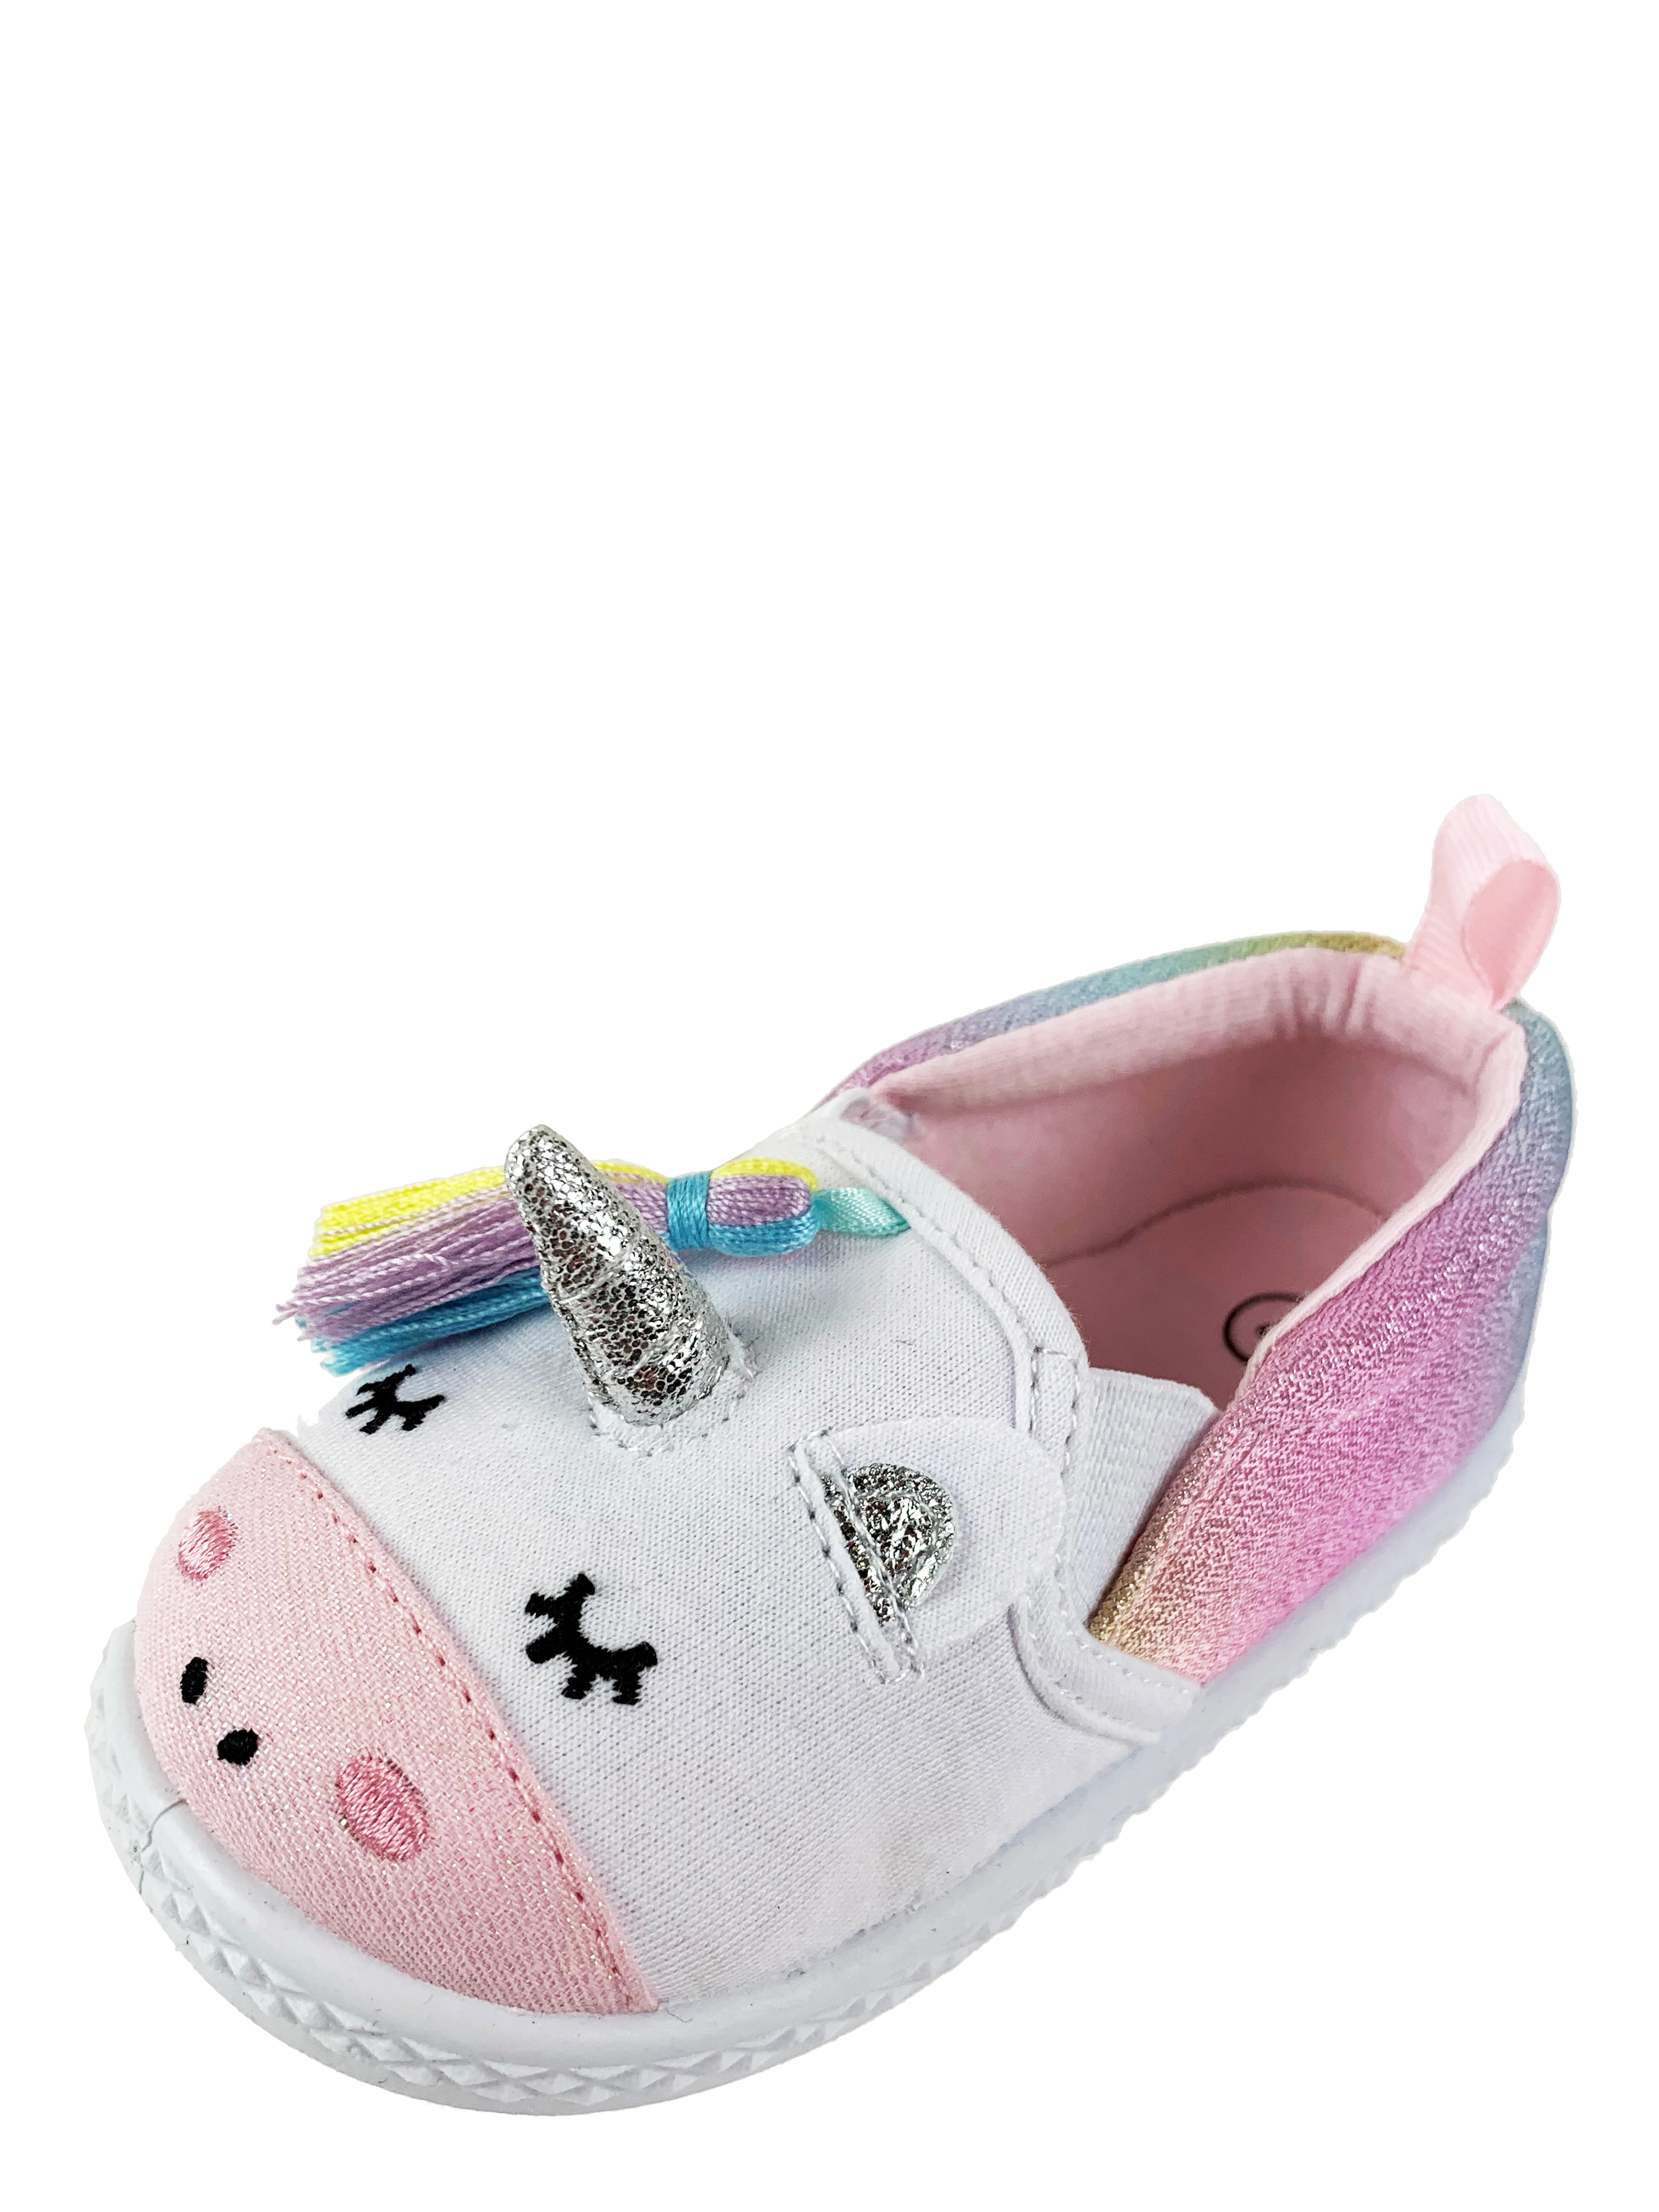 Infant Girls' Wonder Nation Unicorn Casual Pre-Walk Shoe With 3D Unicorn Face And Rainbow Tassel